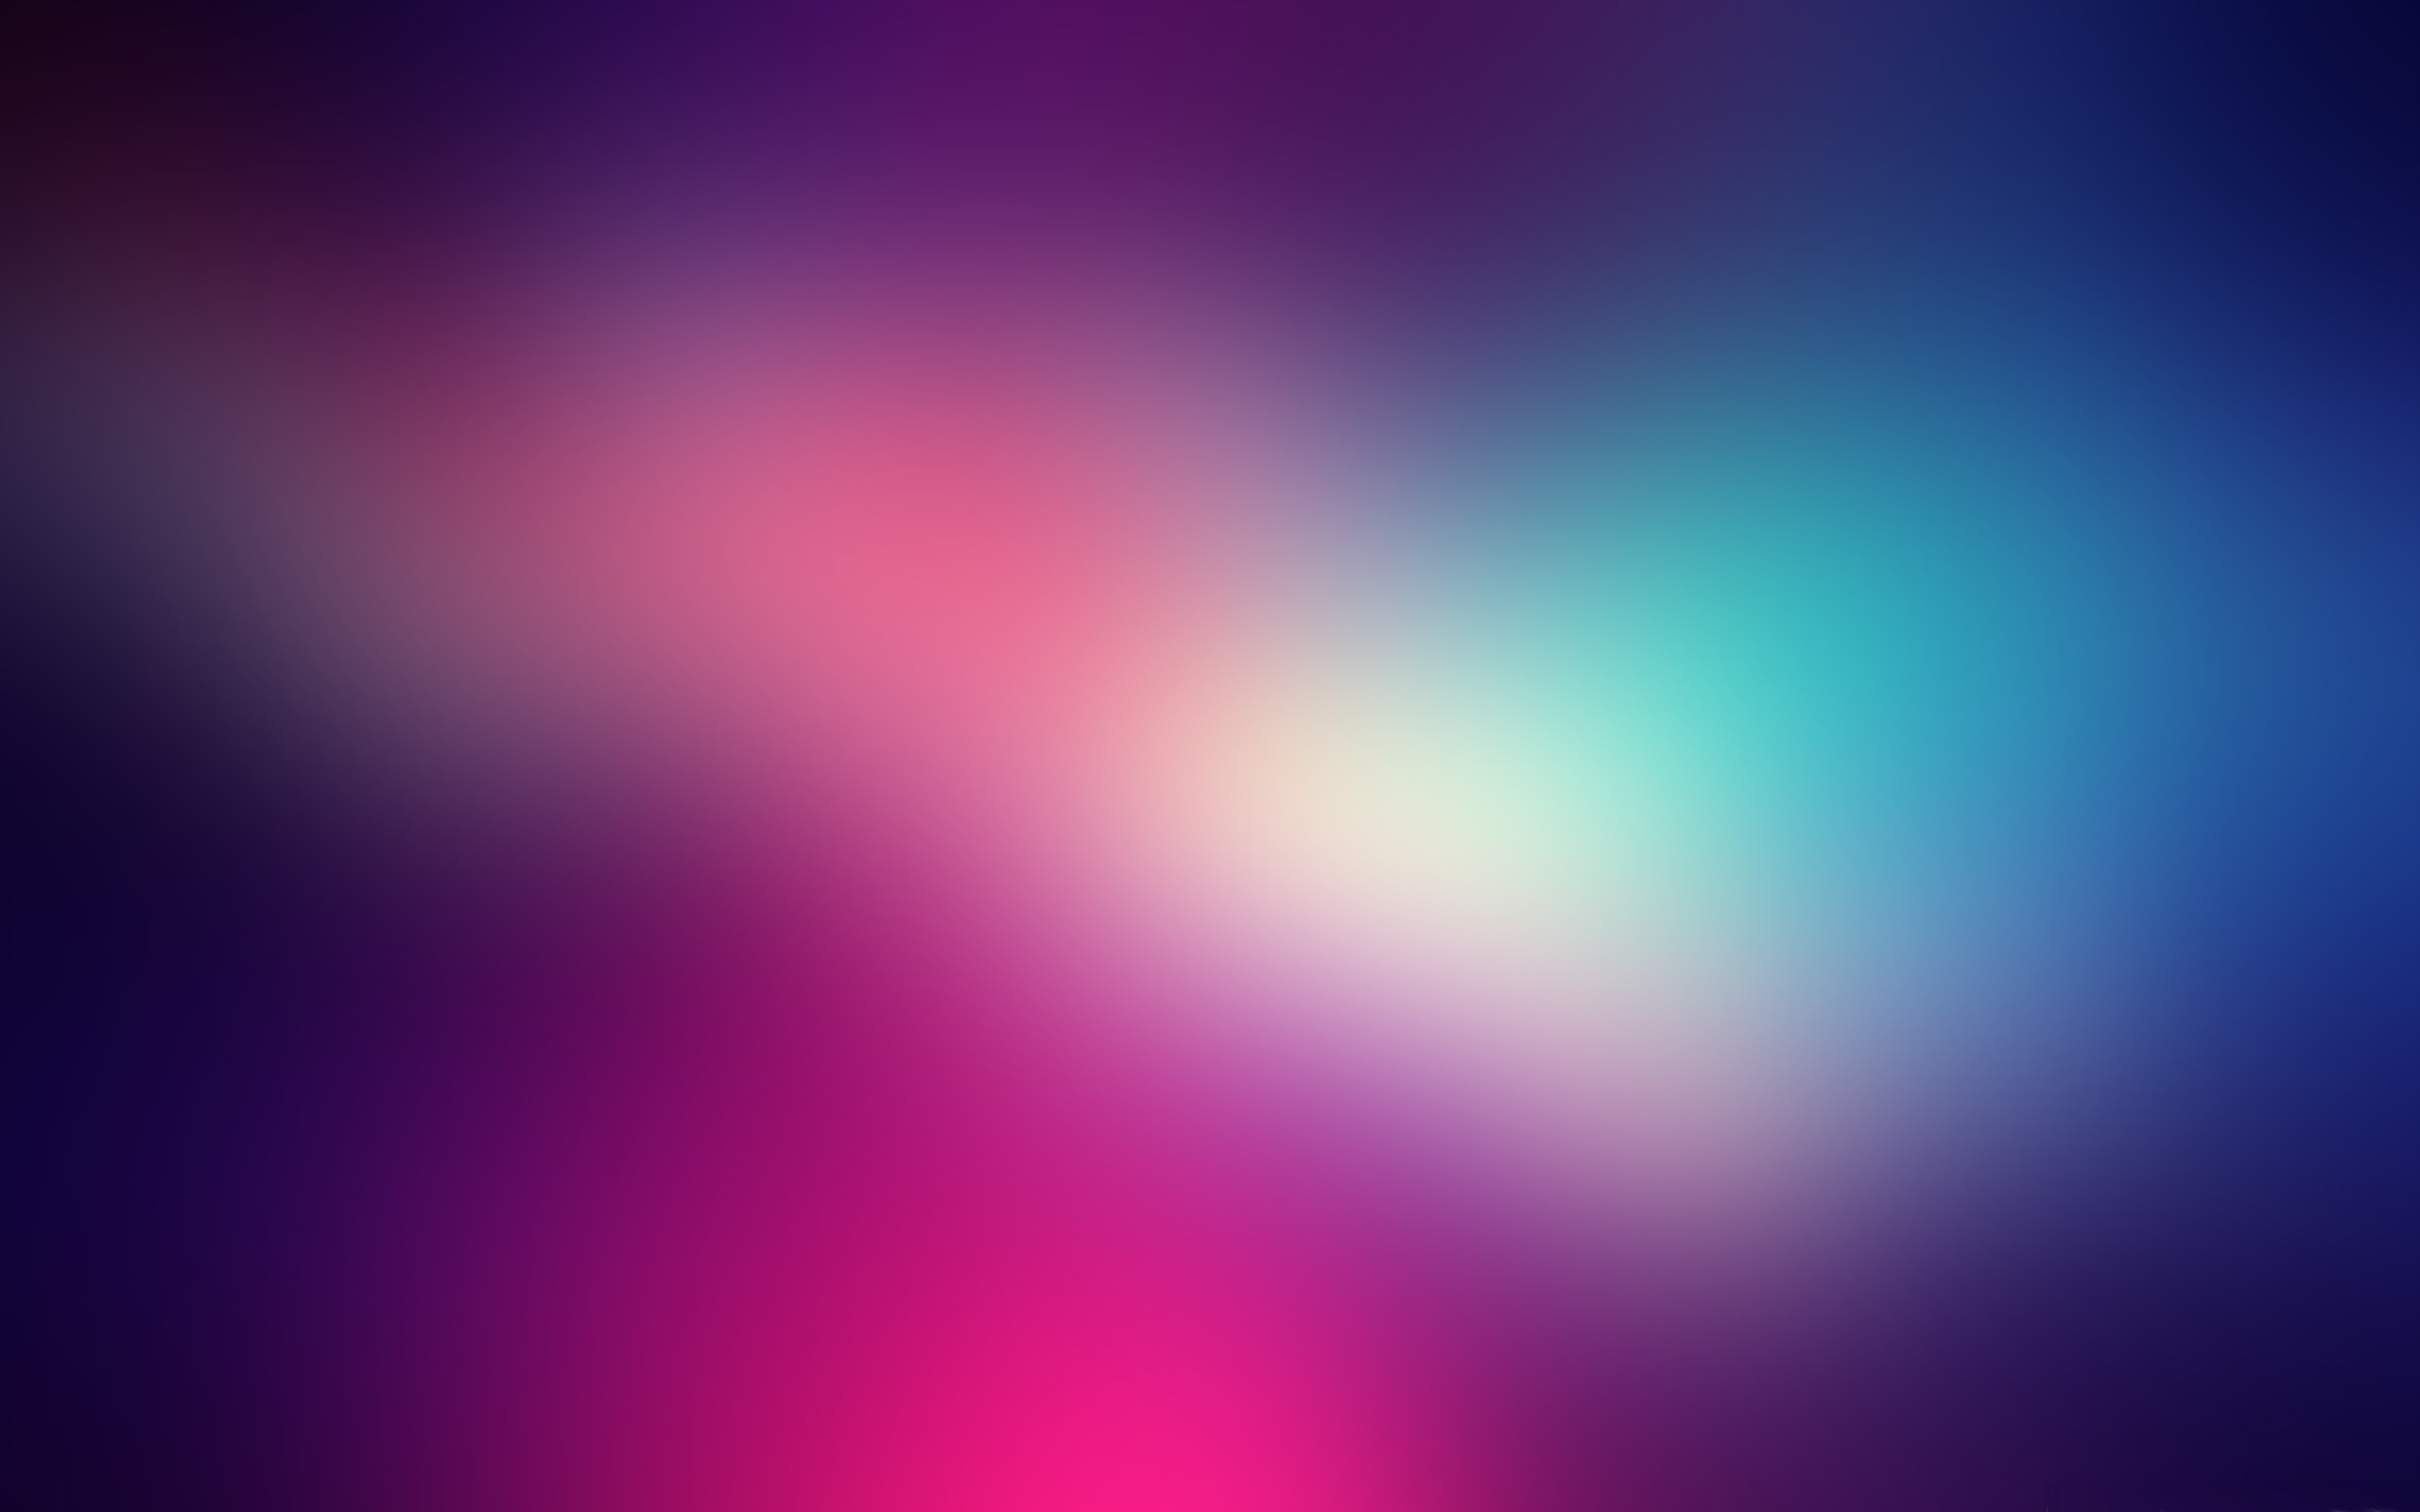 Cool IOS7 Wallpaper